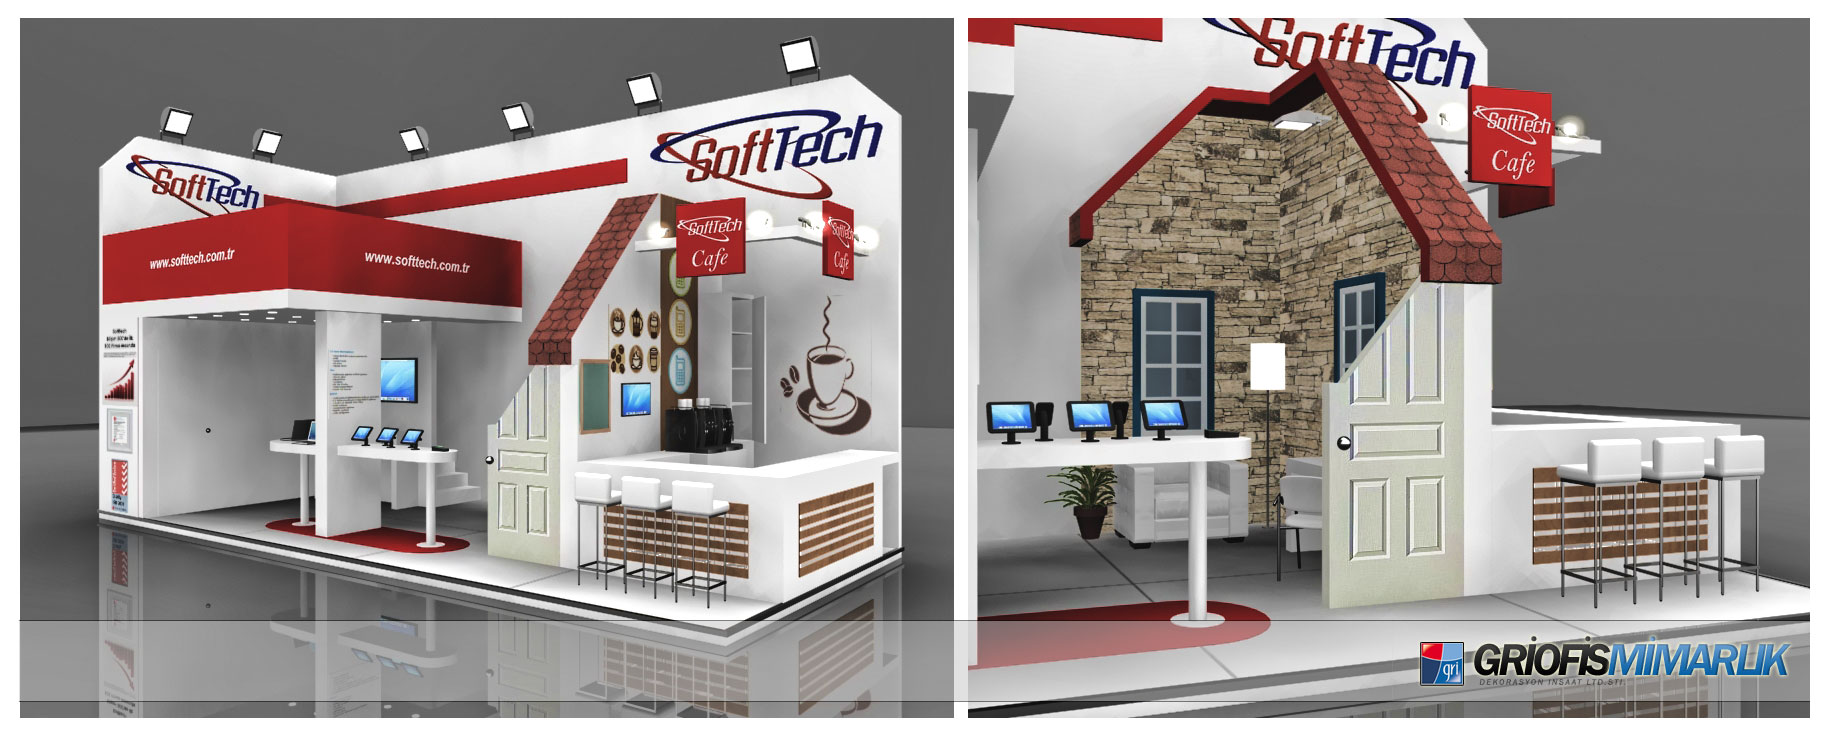 Softtech exhibition stand design 3d by griofismimarlik on for Maquette stand